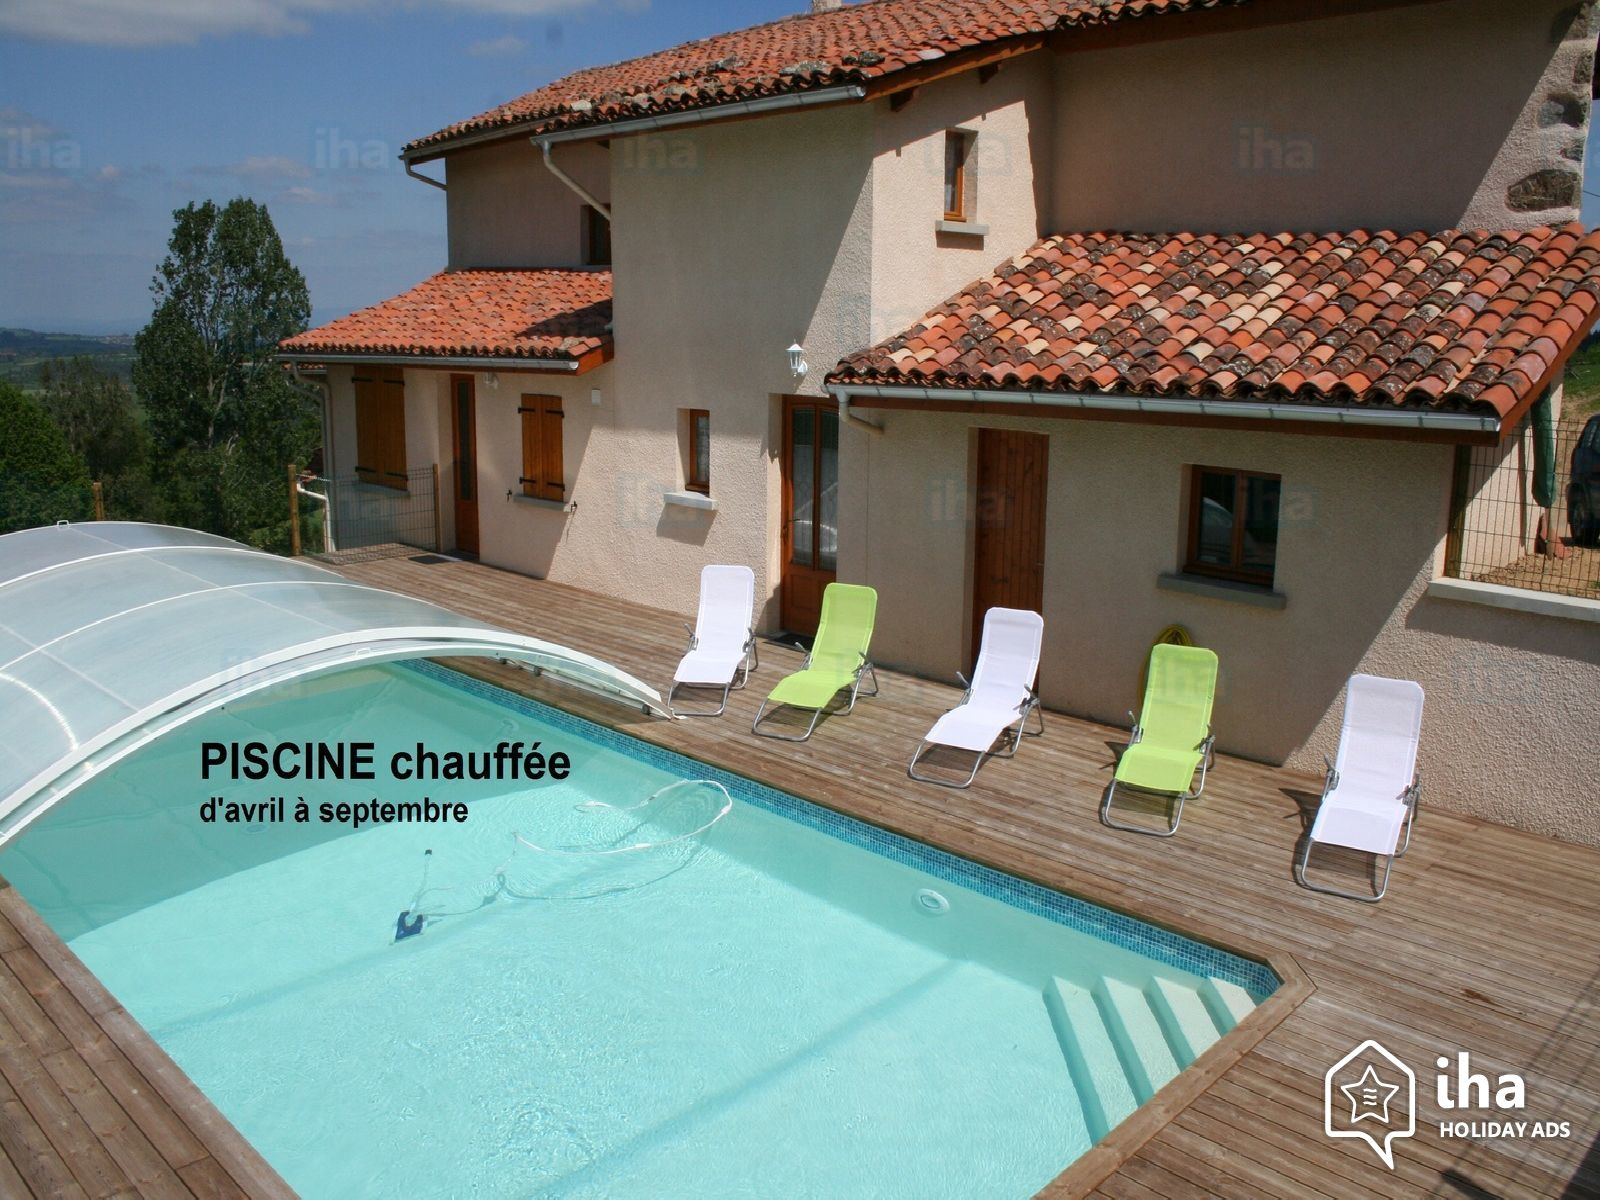 6 Bedrooms Gîte - Self Catering For Rent From 1 To 12 People serapportantà Piscine Saint Priest